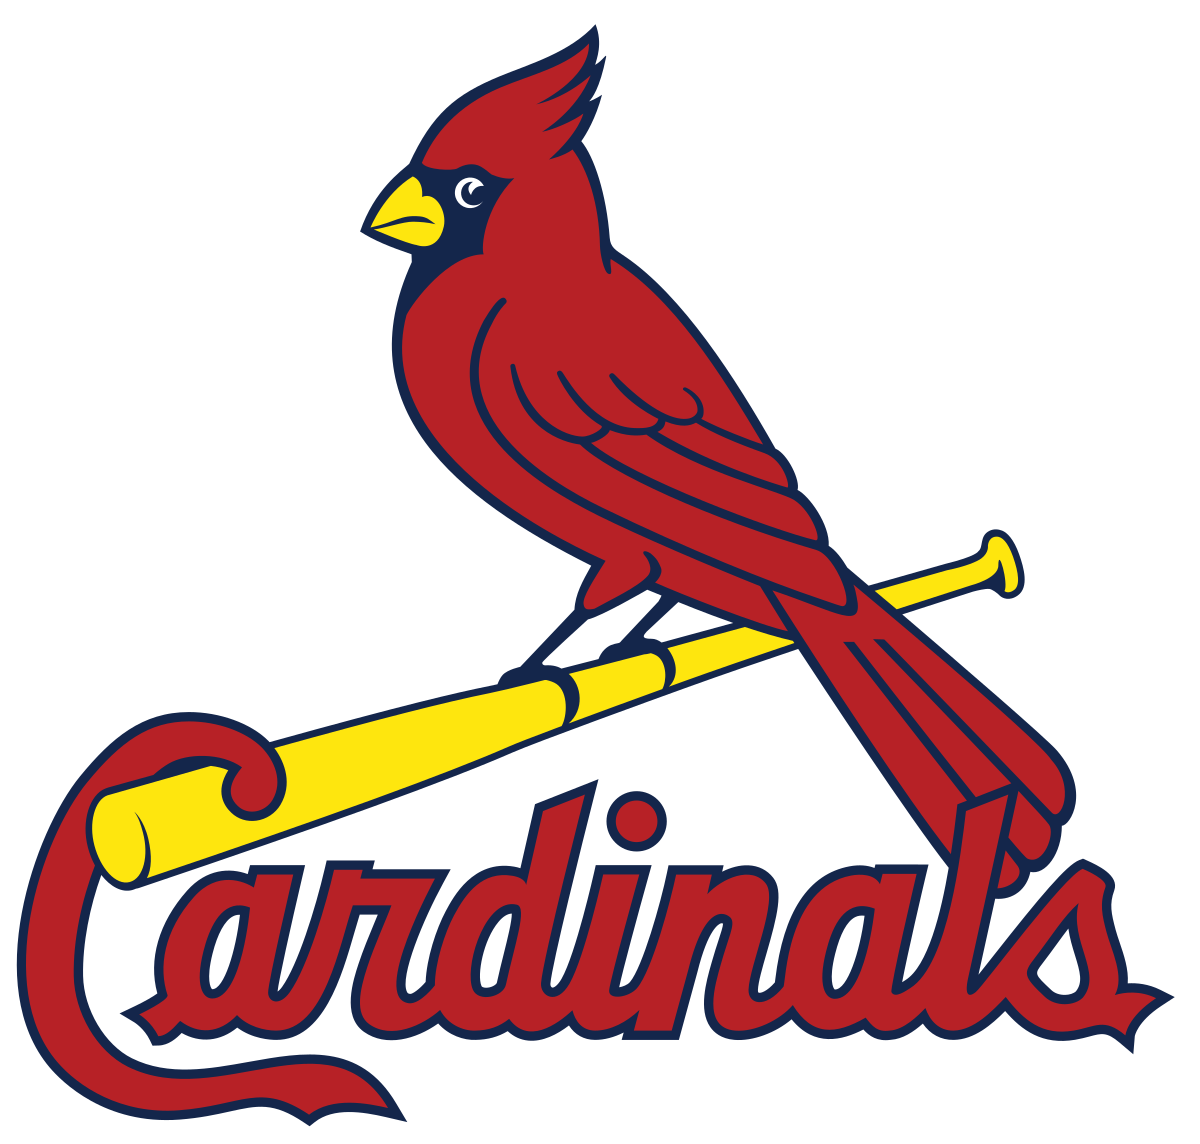 In 1982, the St. Louis Cardinals won the World Series.